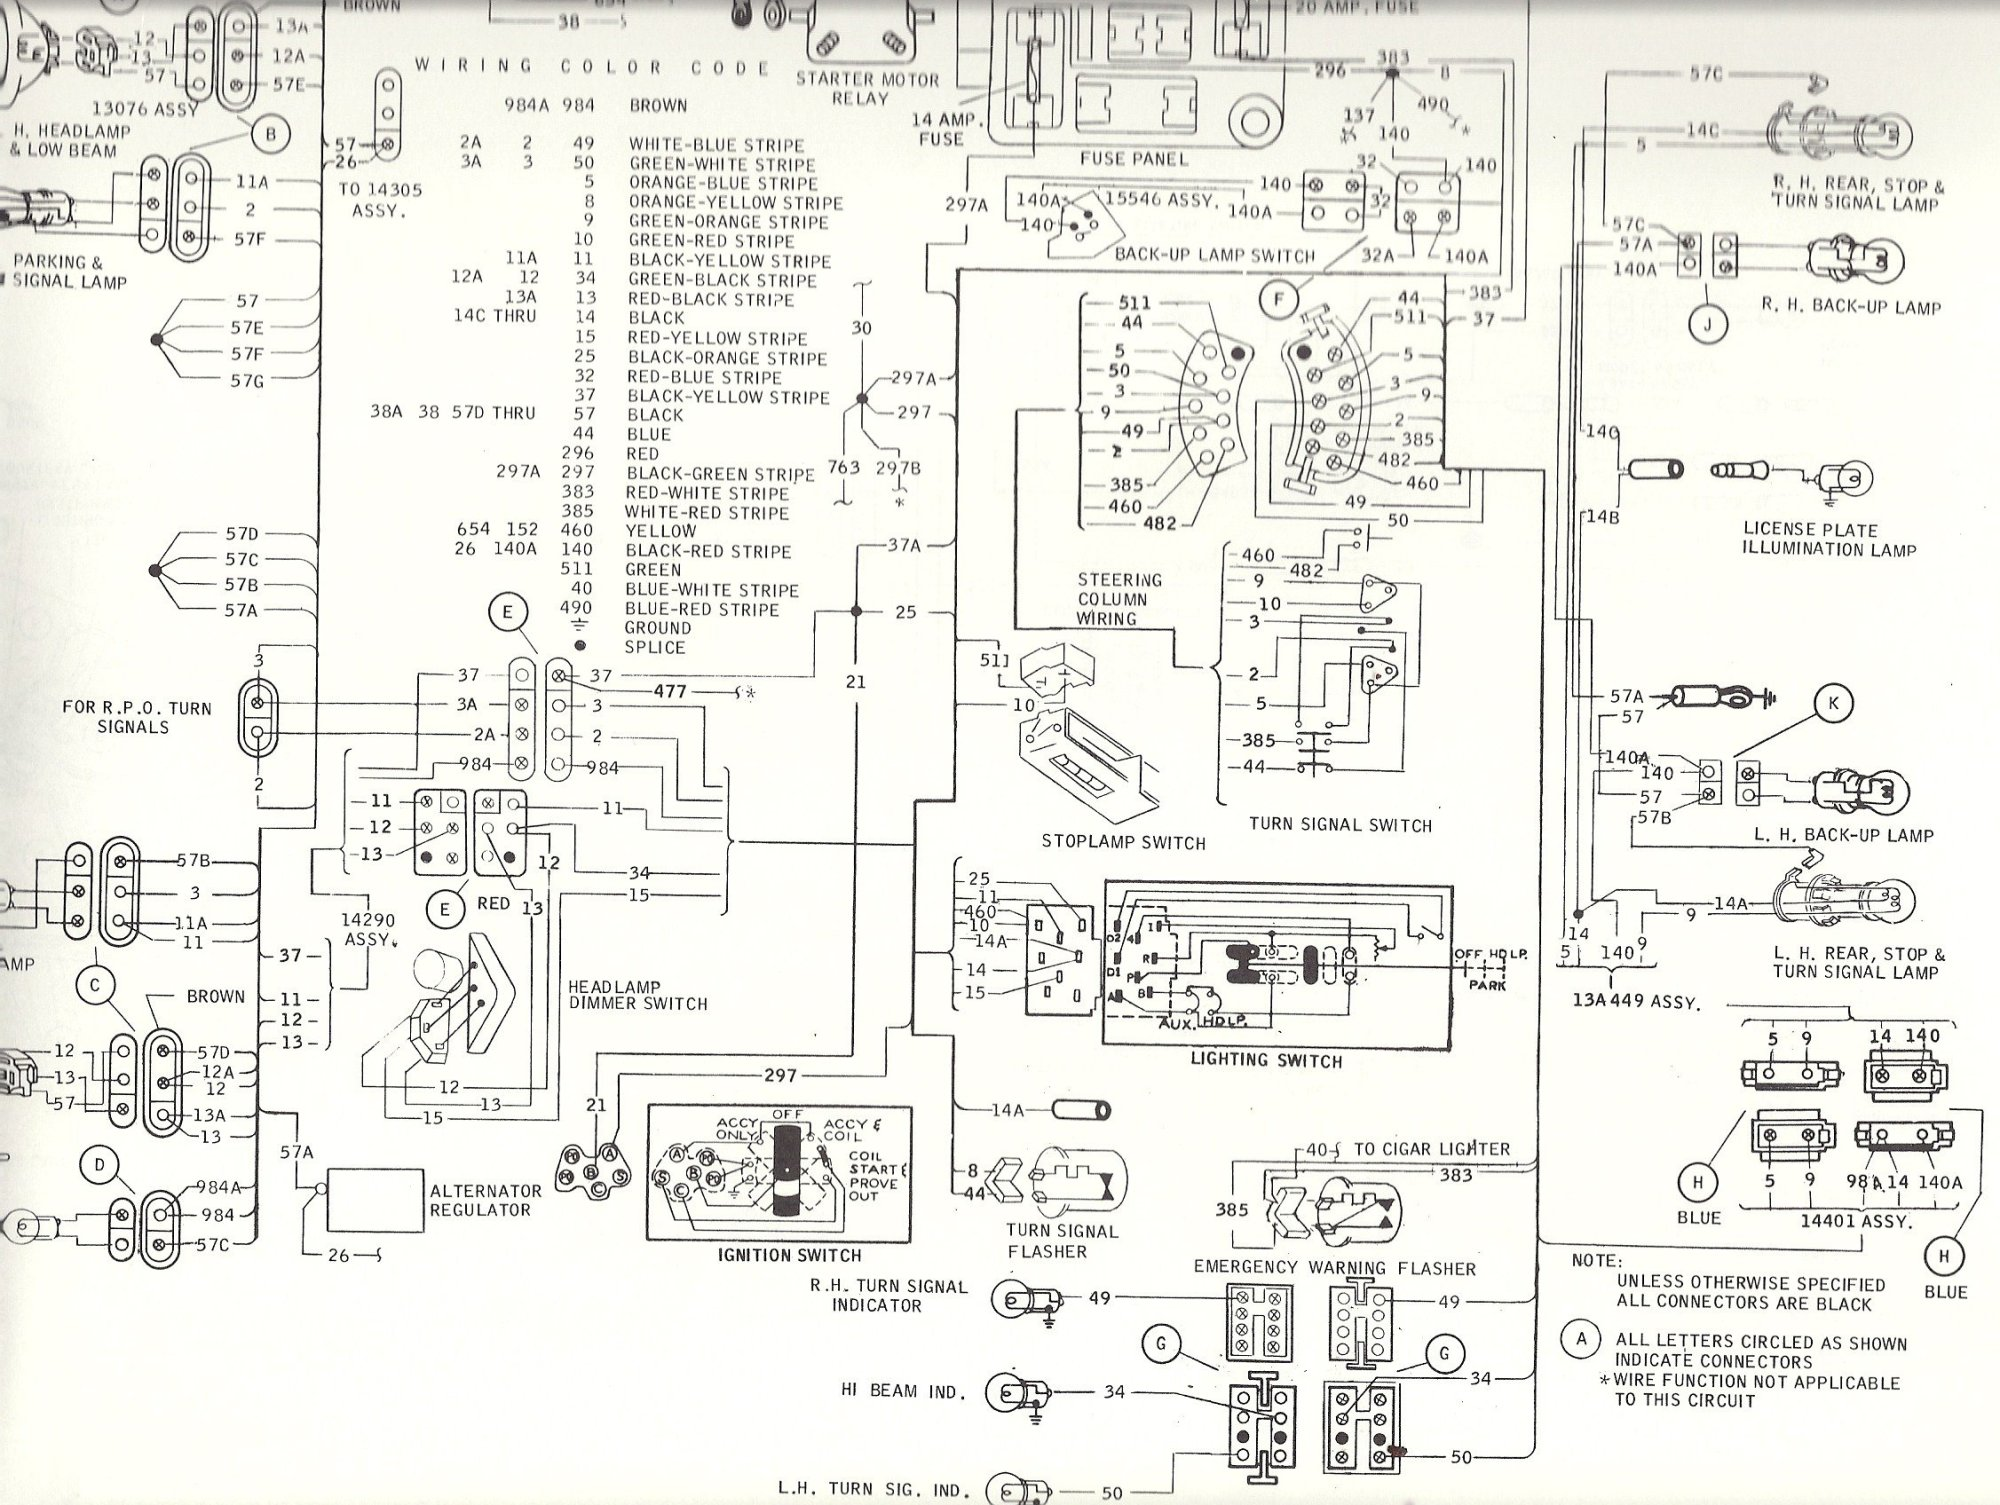 hight resolution of 3 wire switch wiring diagram 69 mustang wiring diagram features 1969 ford mustang wiring schematic and vacuum diagrams